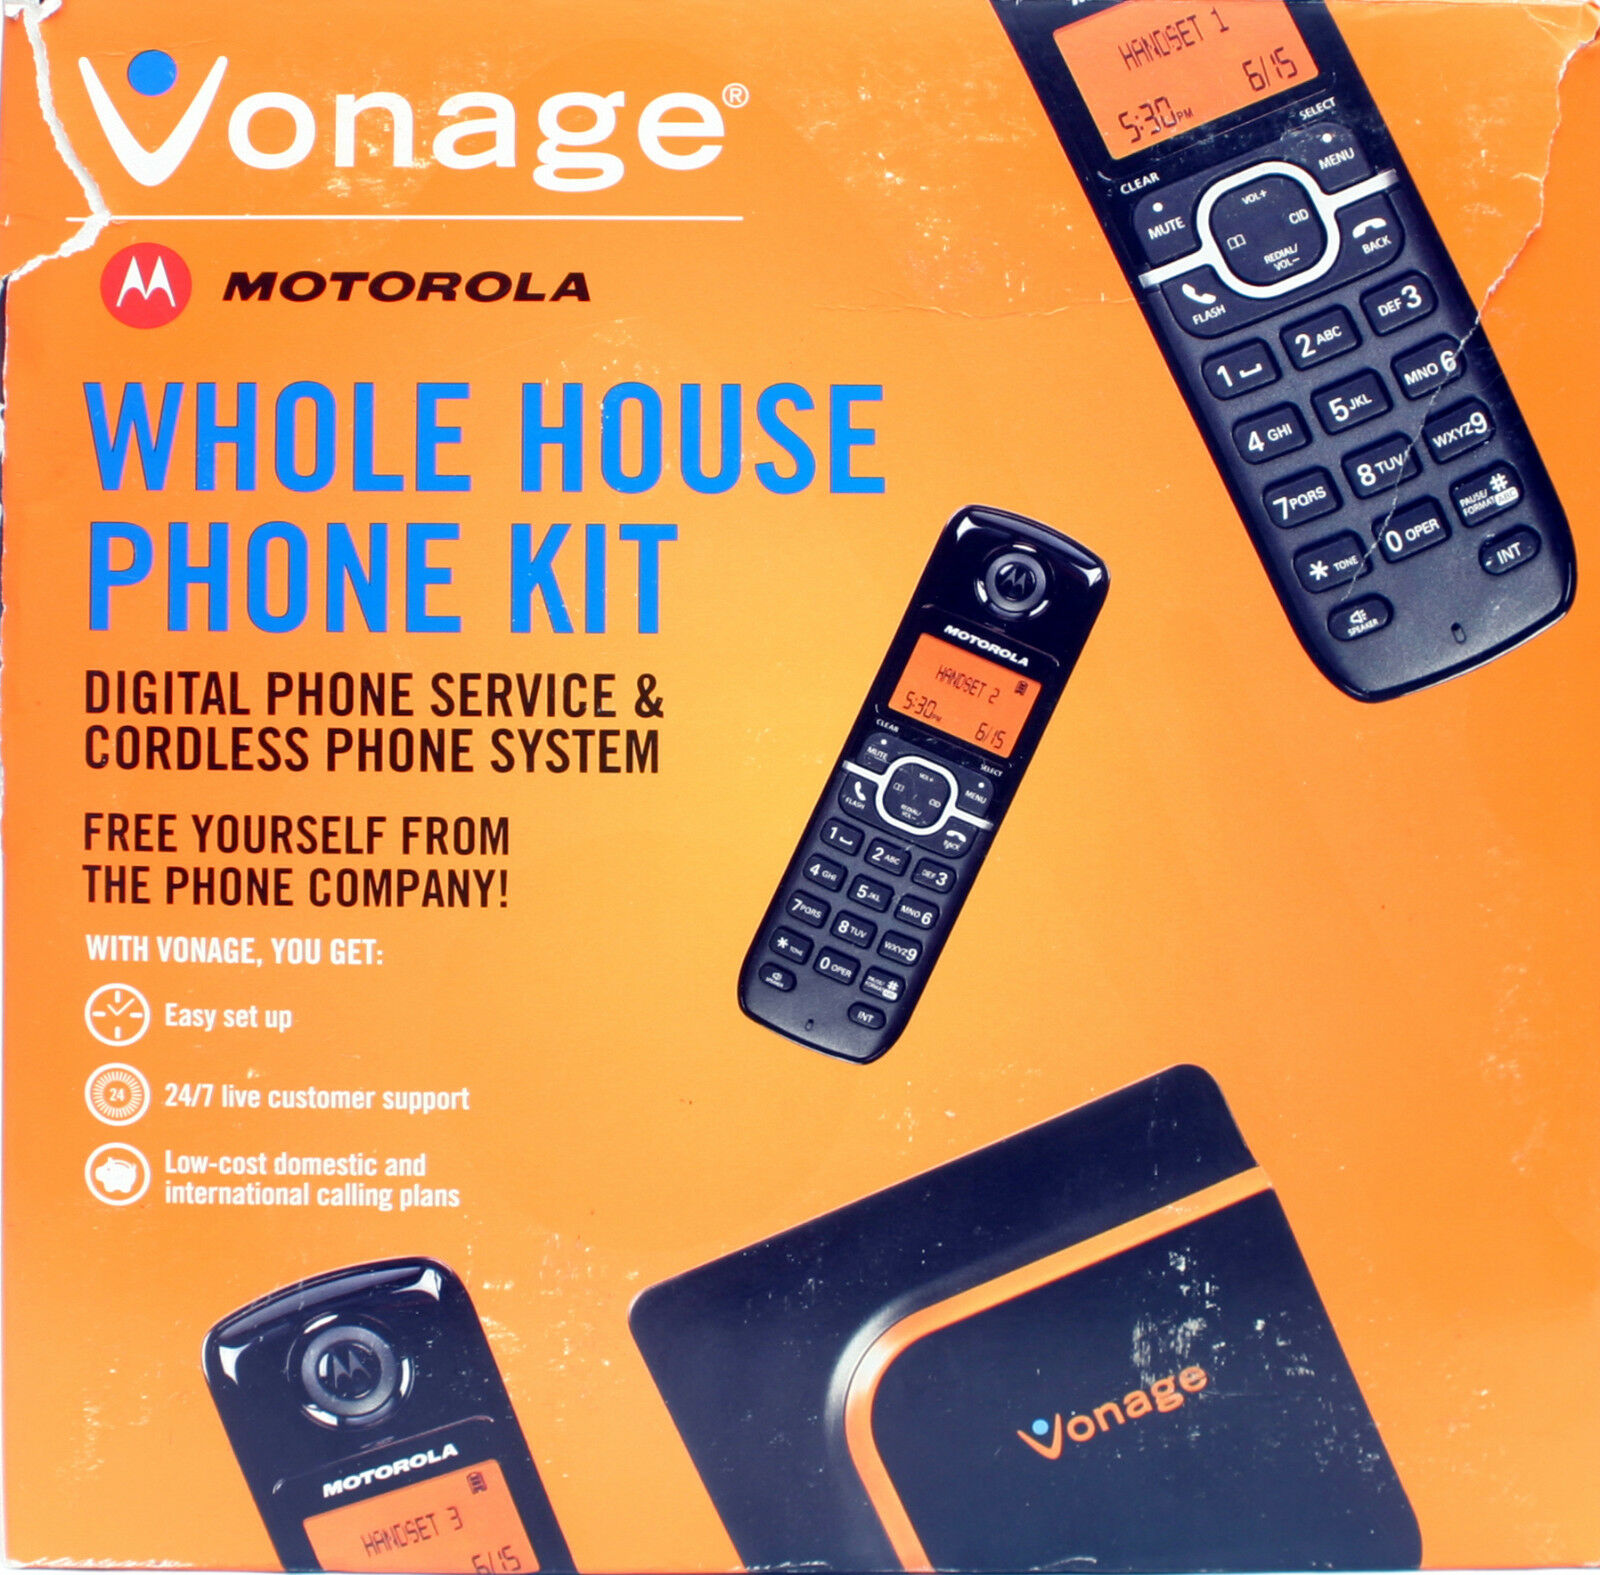 Motorola L603m 3 Cordless PHONES Vonage Vdv22-cvr Whole House Phone Set